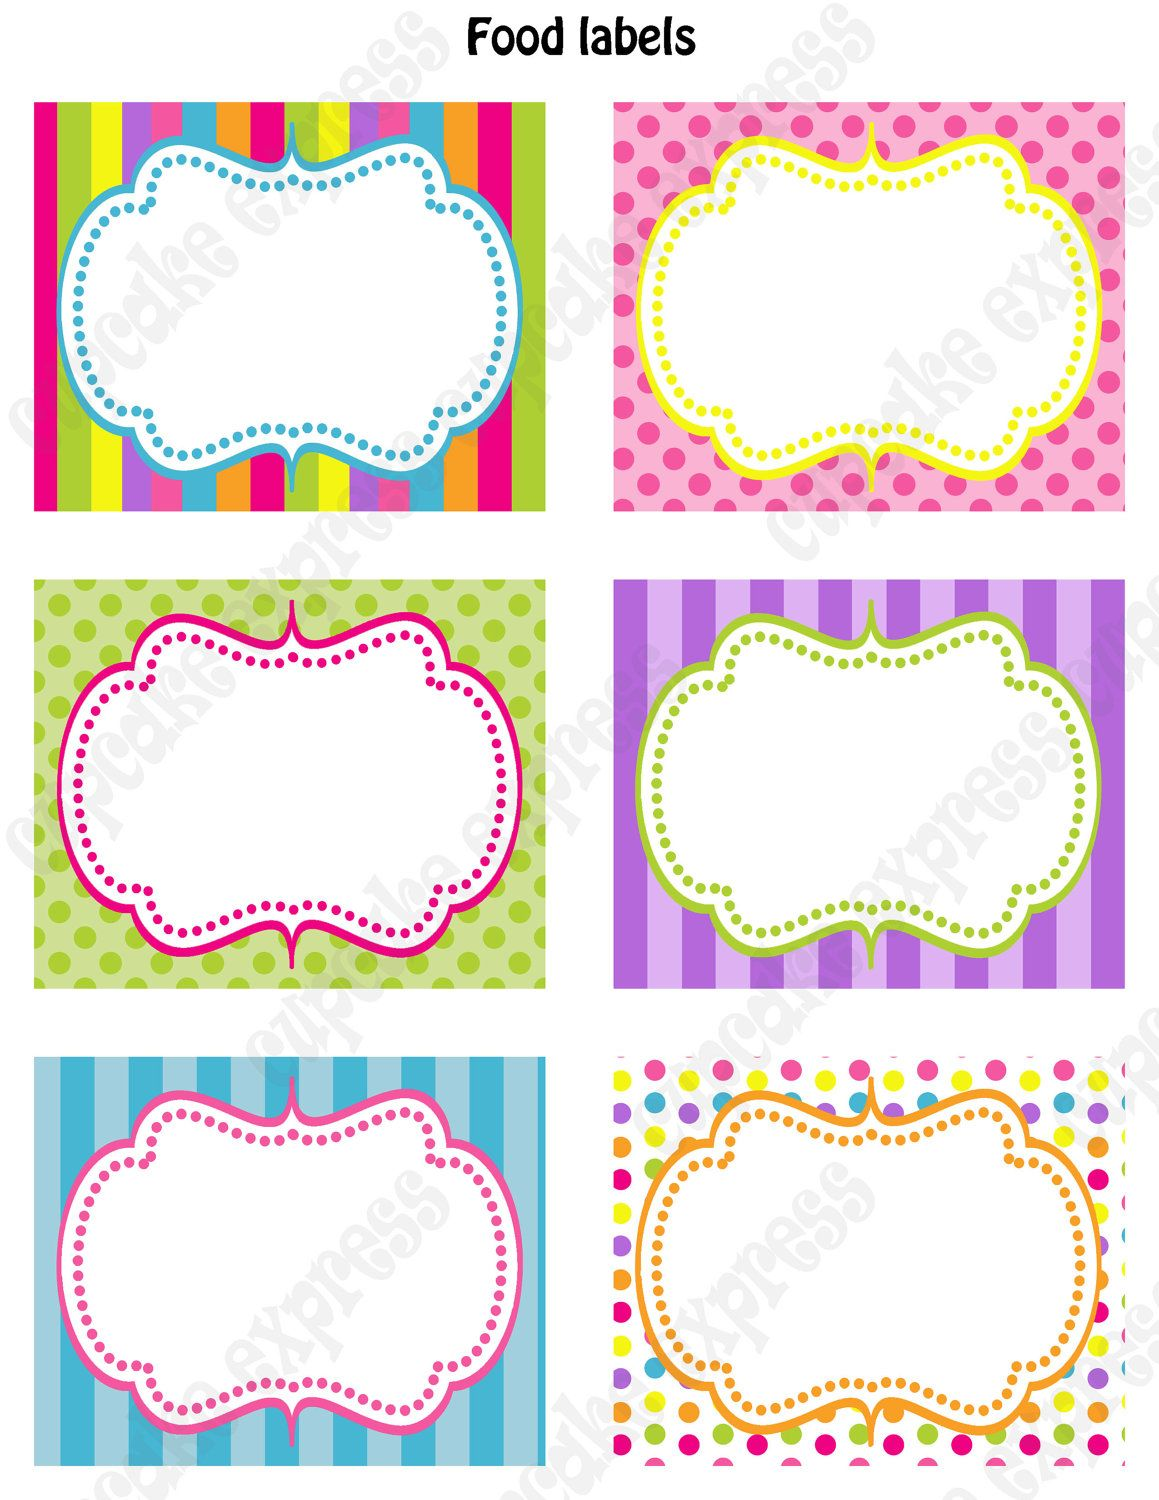 Diy Candy Shoppe Birthday Party Printable Food Labels Pink